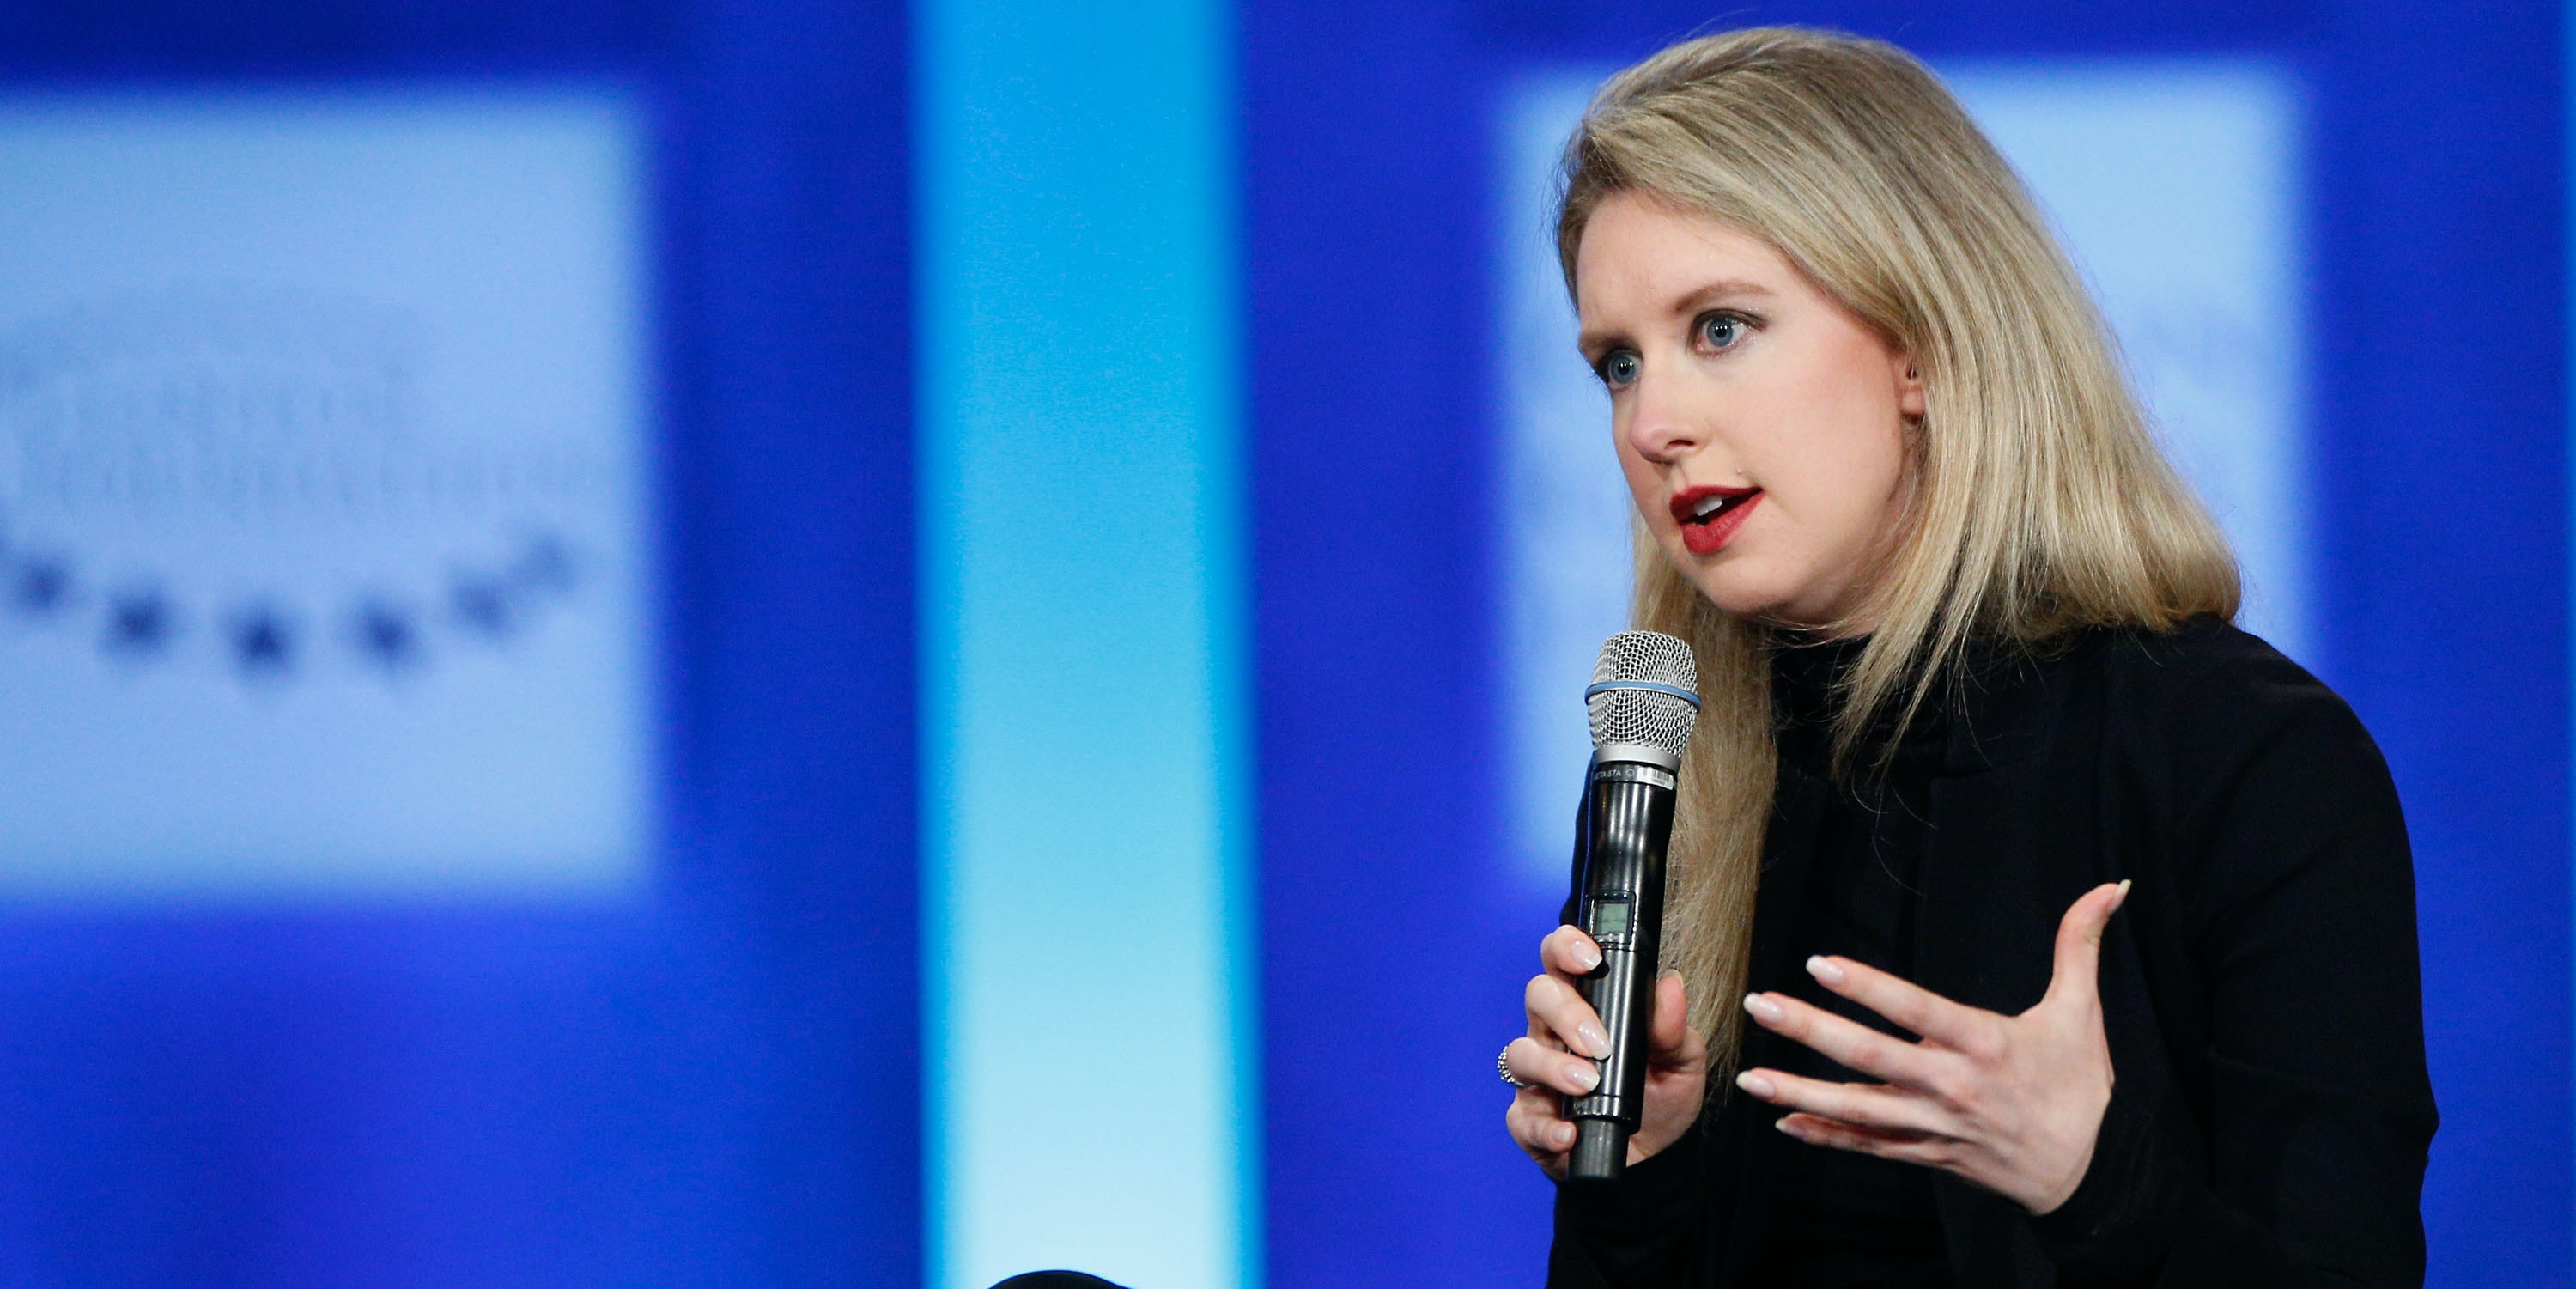 NEW YORK, NY - SEPTEMBER 29: Elizabeth Holmes speaks on stage during the closing session of the Clinton Global Initiative 2015 on September 29, 2015 in New York City.  (Photo by JP Yim/Getty Images)